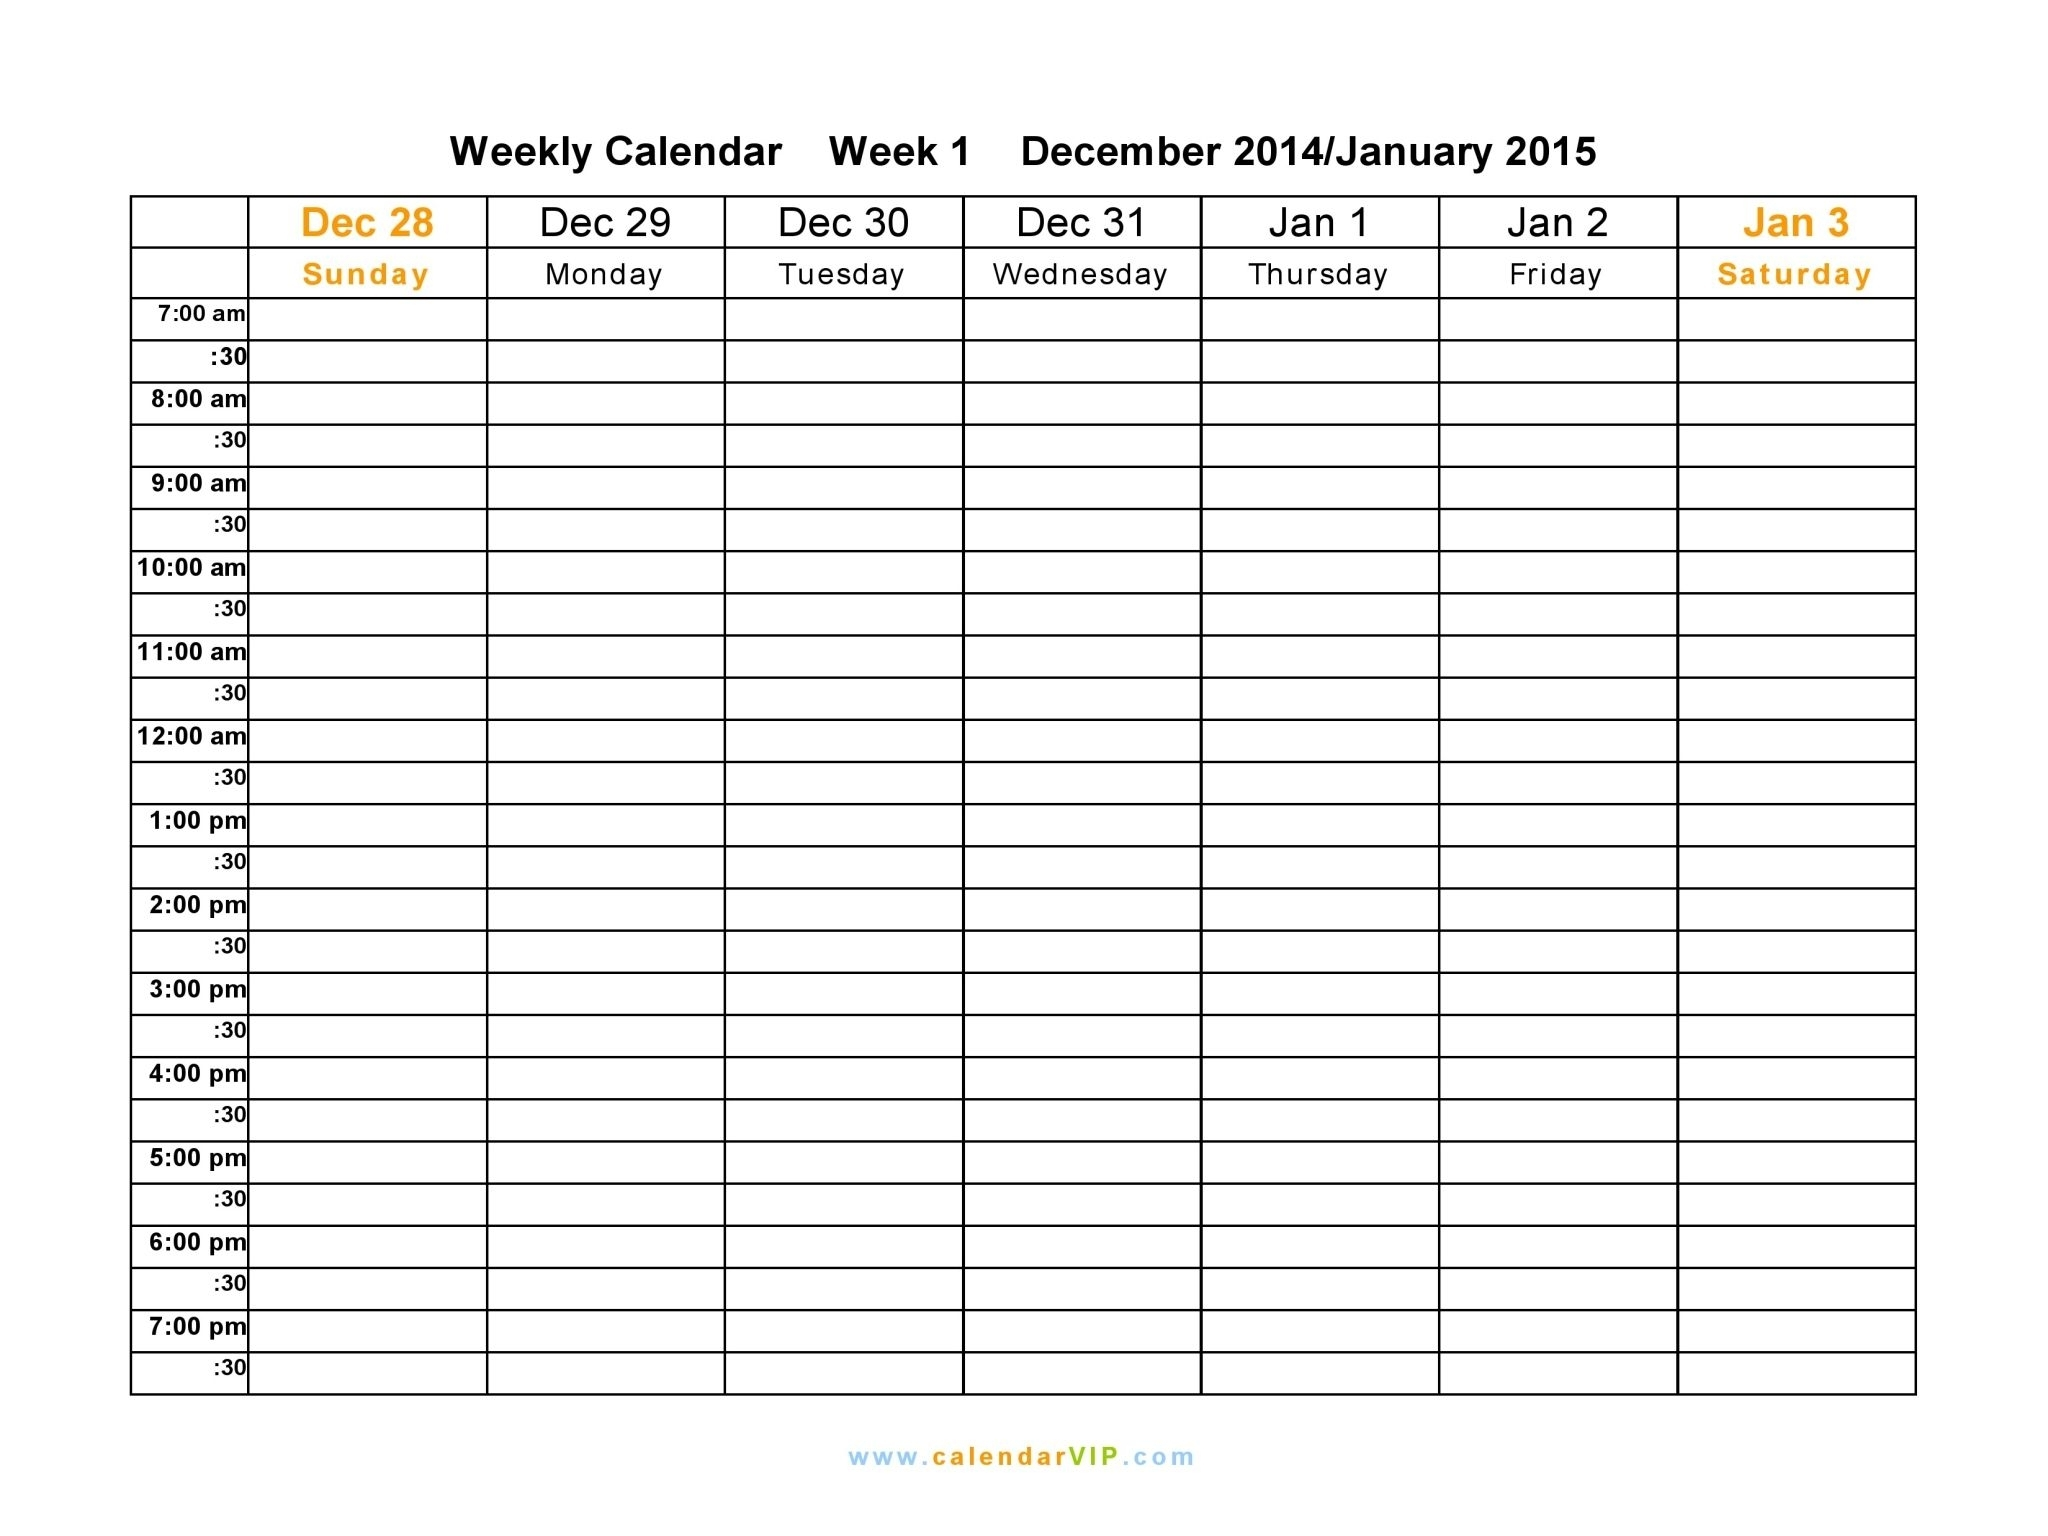 Free Printable Weekly Calendar Templates 2015 | Swe | Monthly for Free Online Printable Weekly Calendar